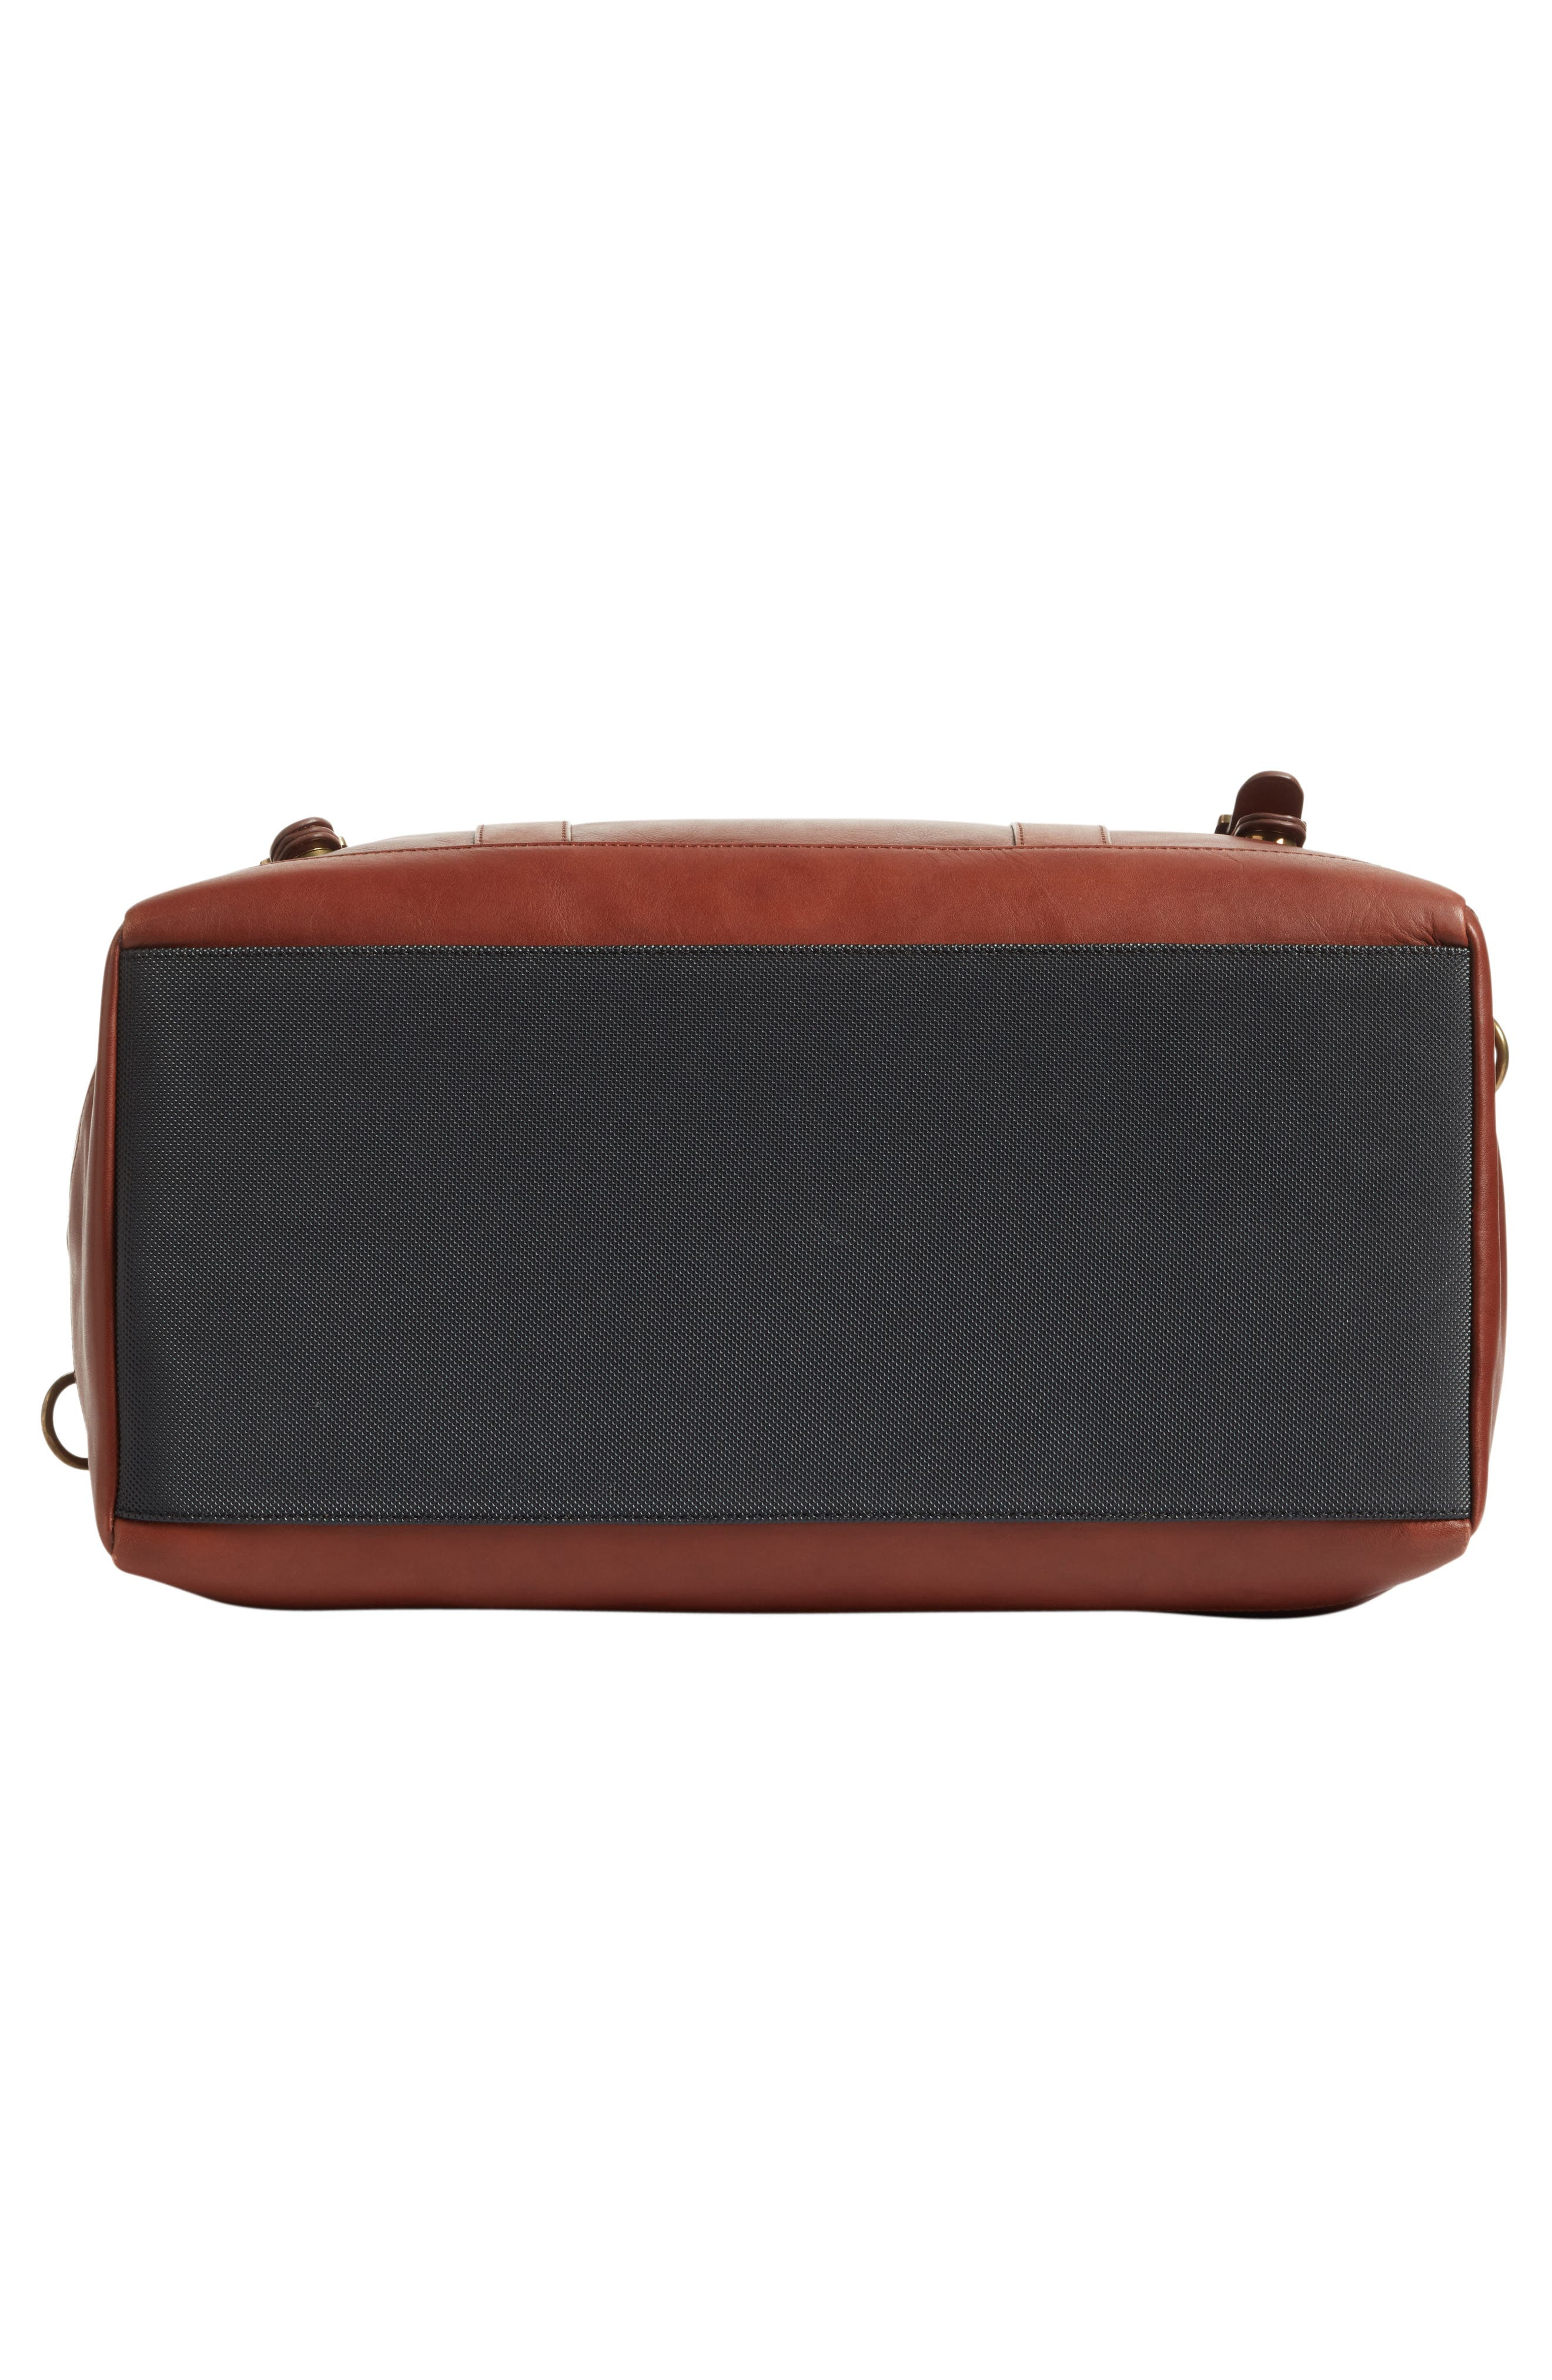 Leather Duffel Bag,                             Alternate thumbnail 12, color,